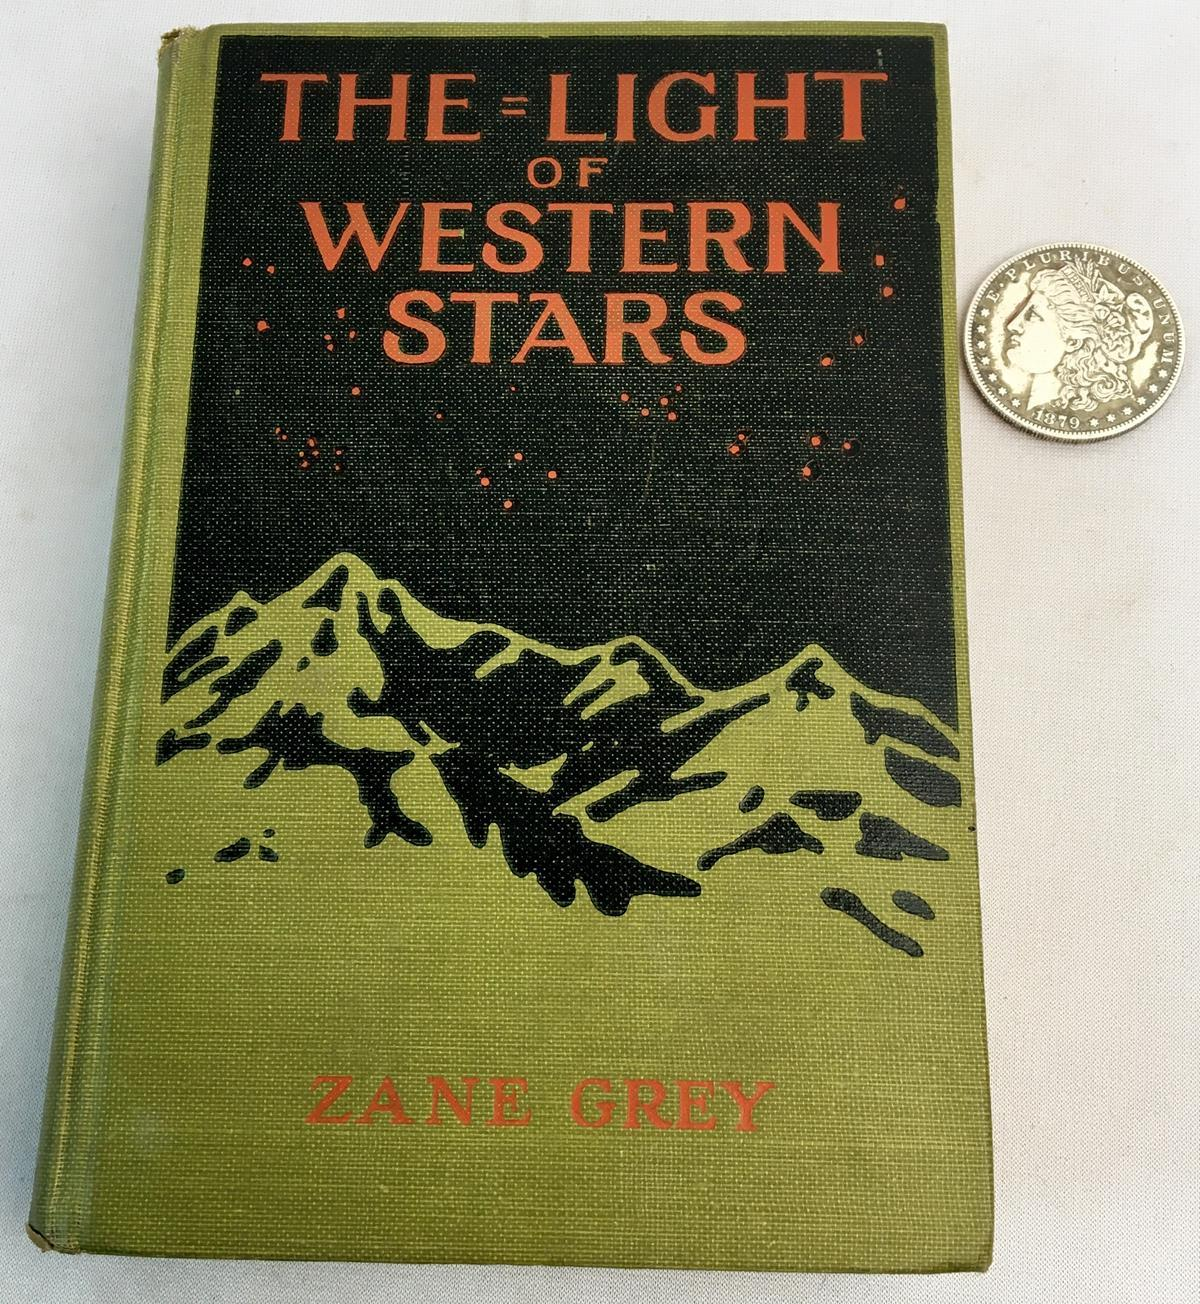 1914 The Light of Western Stars: A Romance by Zane Grey FIRST EDITION